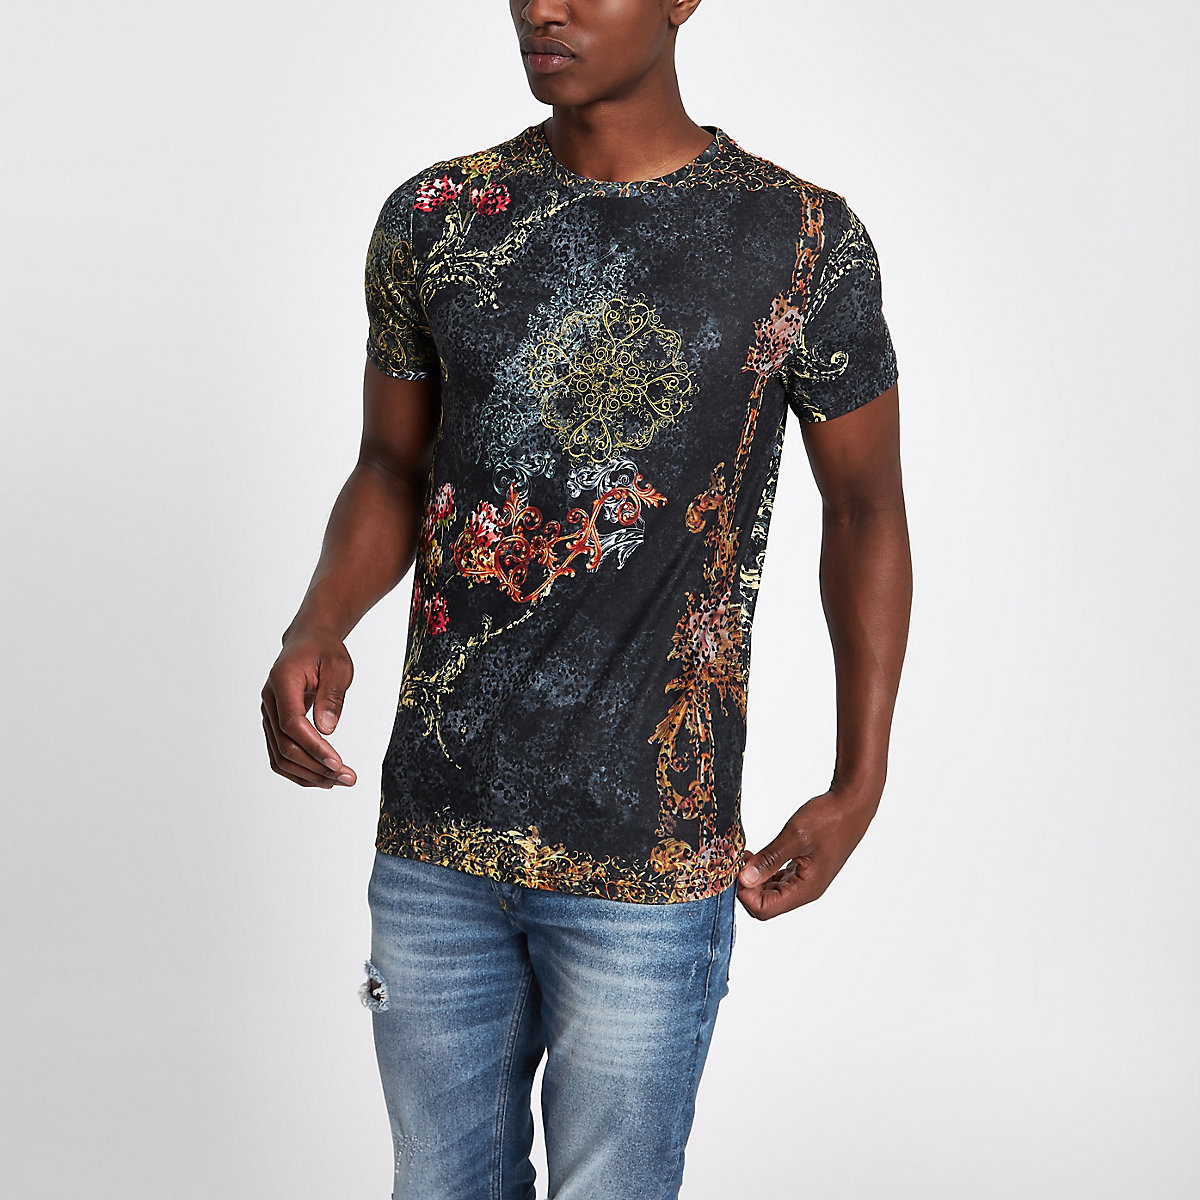 Schwarzes Slim Fit T-Shirt mit Leopardenprint